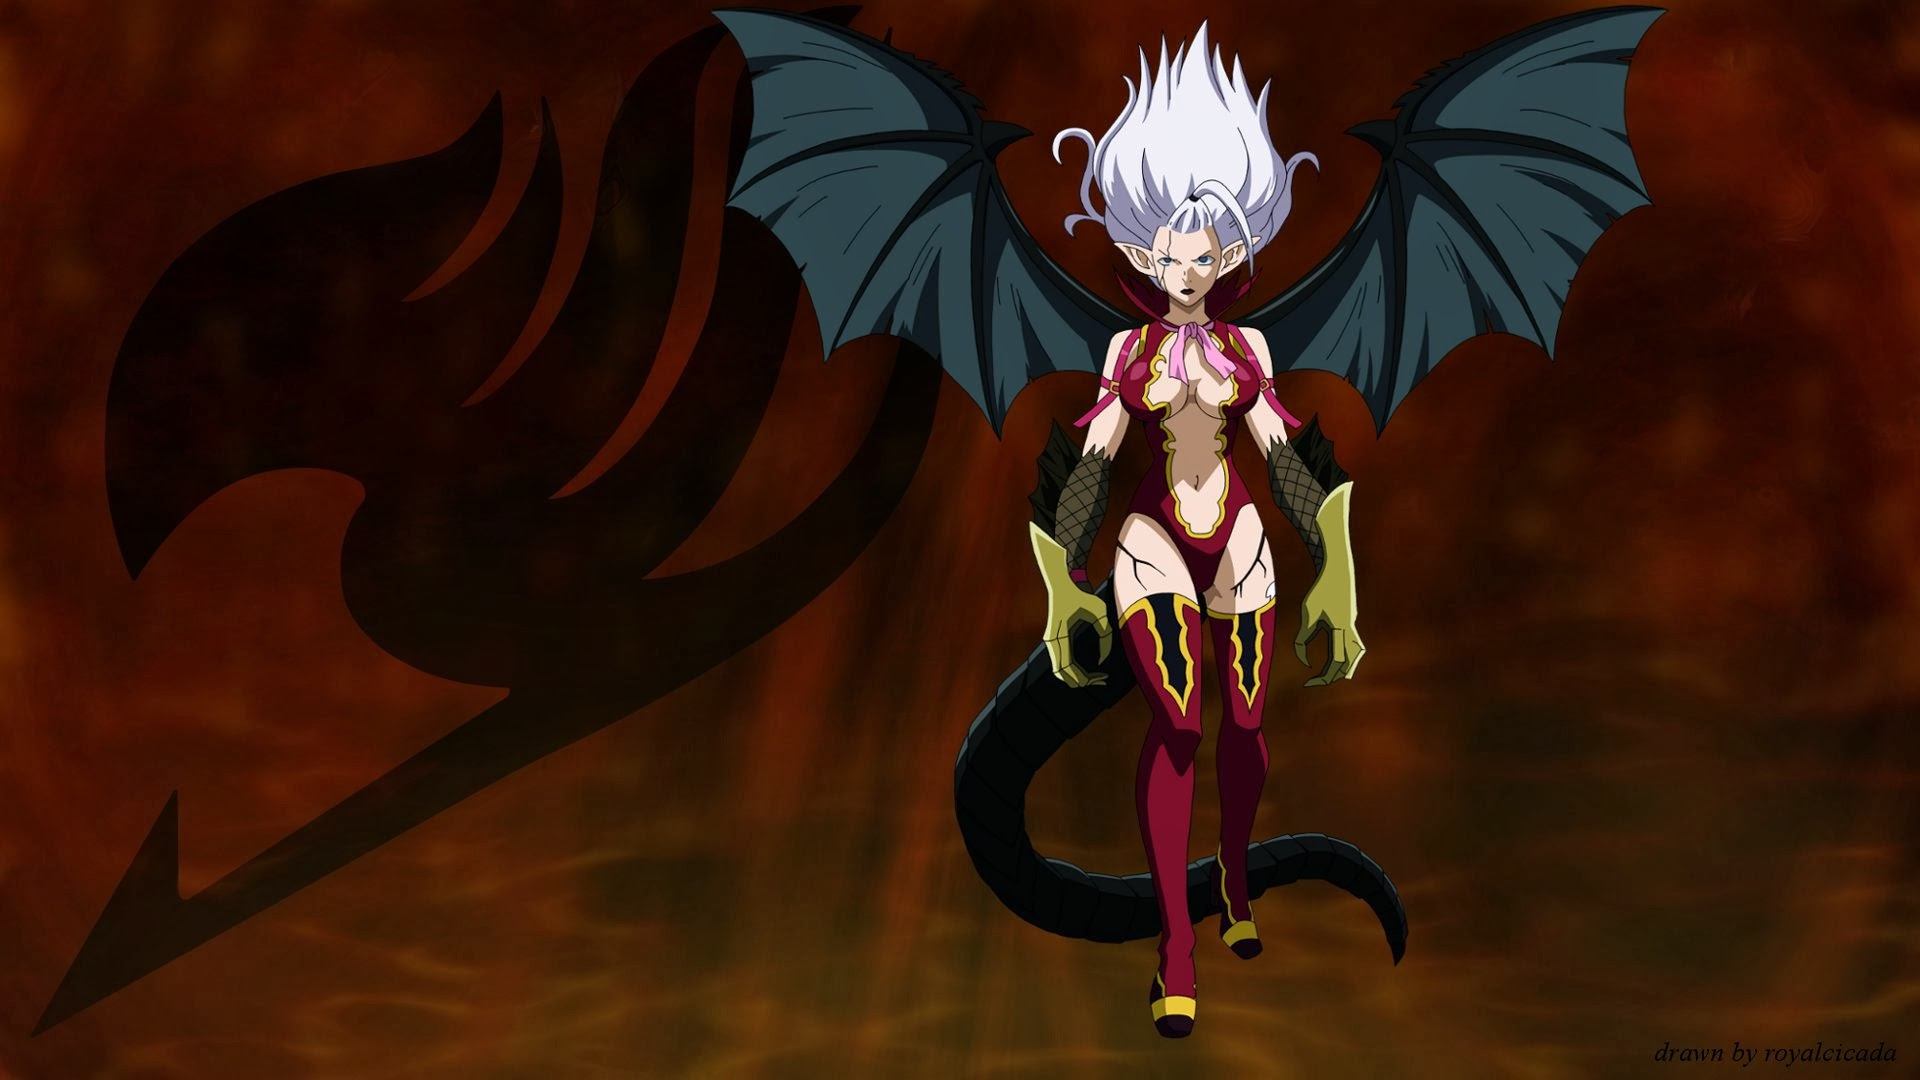 Demon Fairy Tail Mirajane Satan Soul 1920x1080 Download Hd Wallpaper Wallpapertip Fairy tail natsu s theme extended. demon fairy tail mirajane satan soul